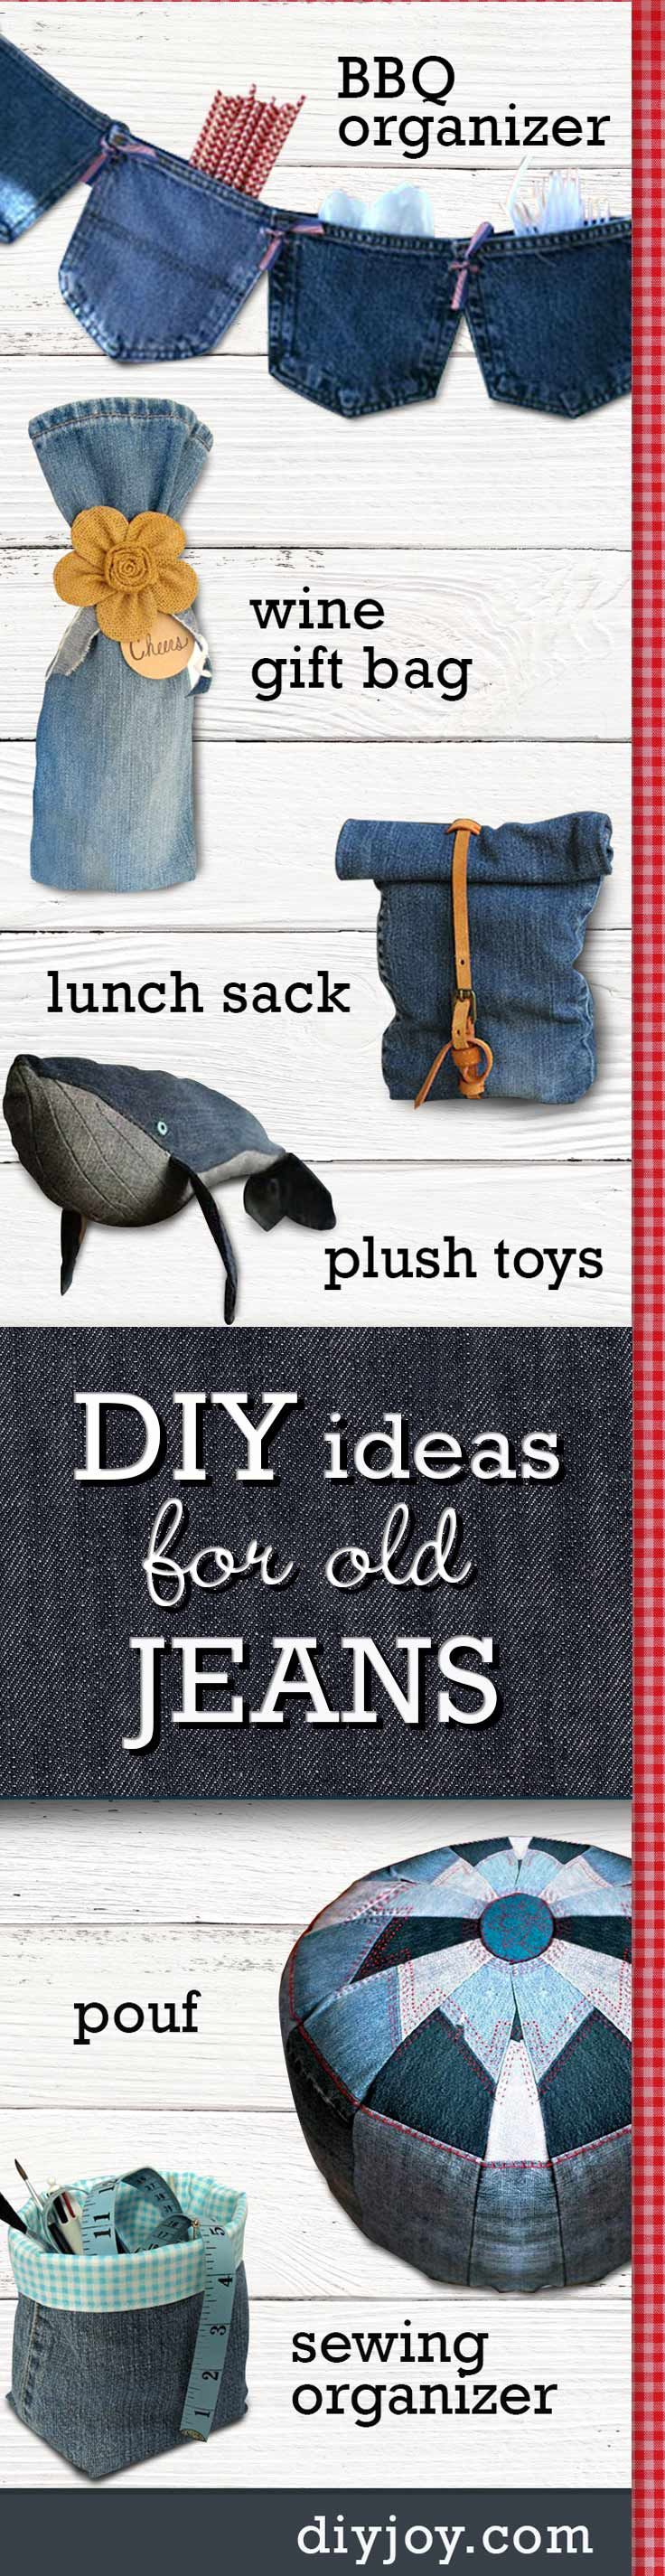 DIY ideas for old jeans - Upcycling Projects with Denim   Cute Crafts and Creative Home Decor by DIY JOY http://diyjoy.com/16-upcycled-projects-from-old-jeans